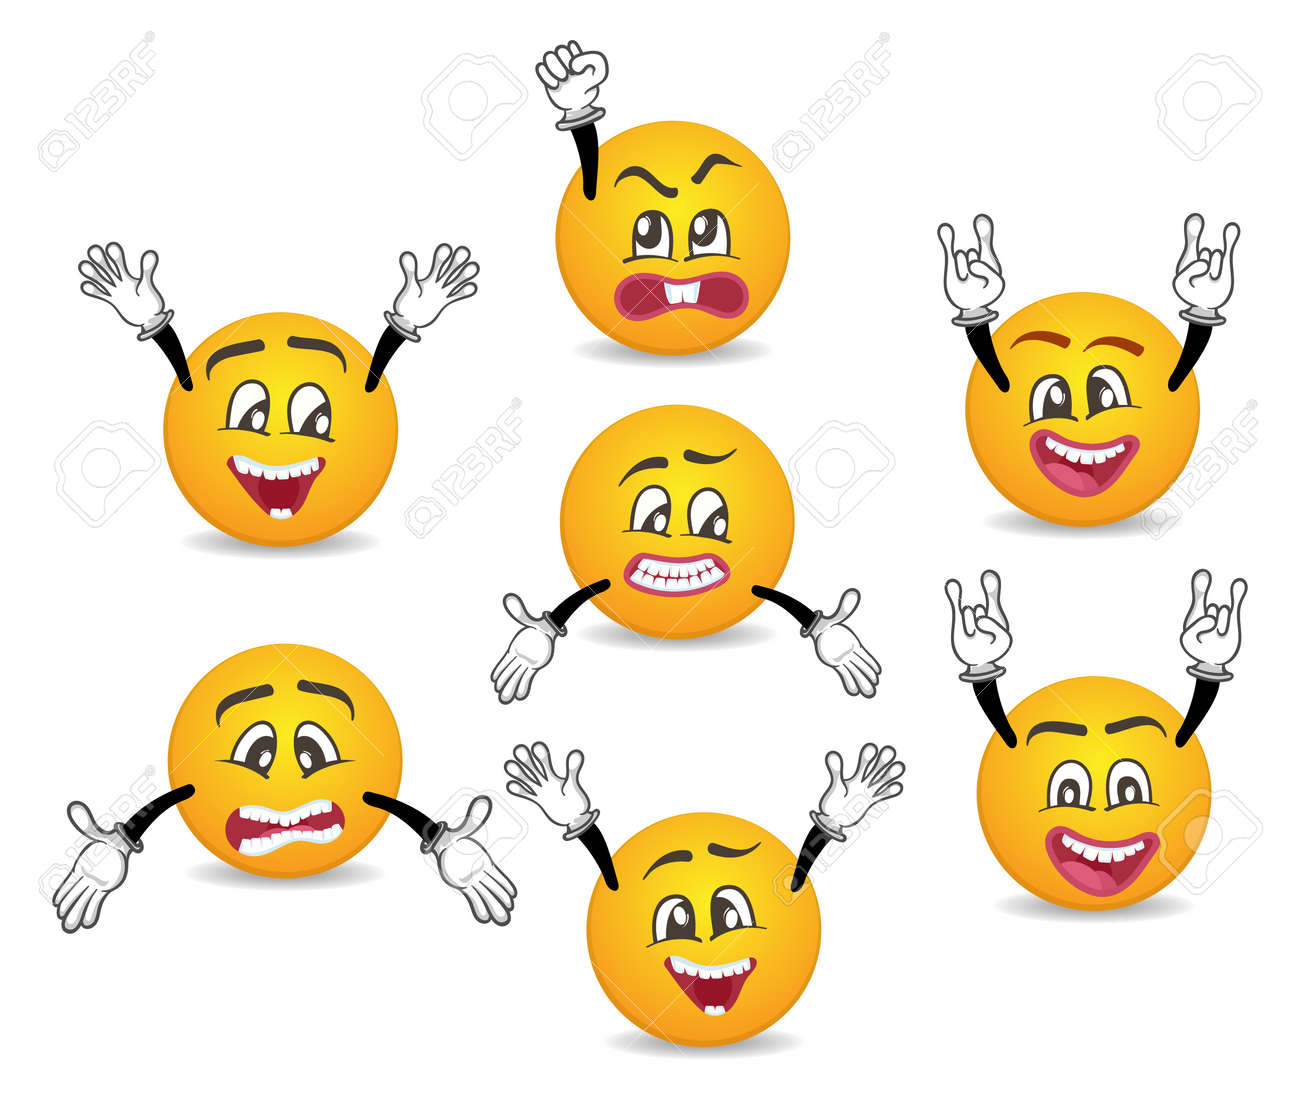 3d Funny Smileys Faces With Hands Gesture Set Happiness Anger